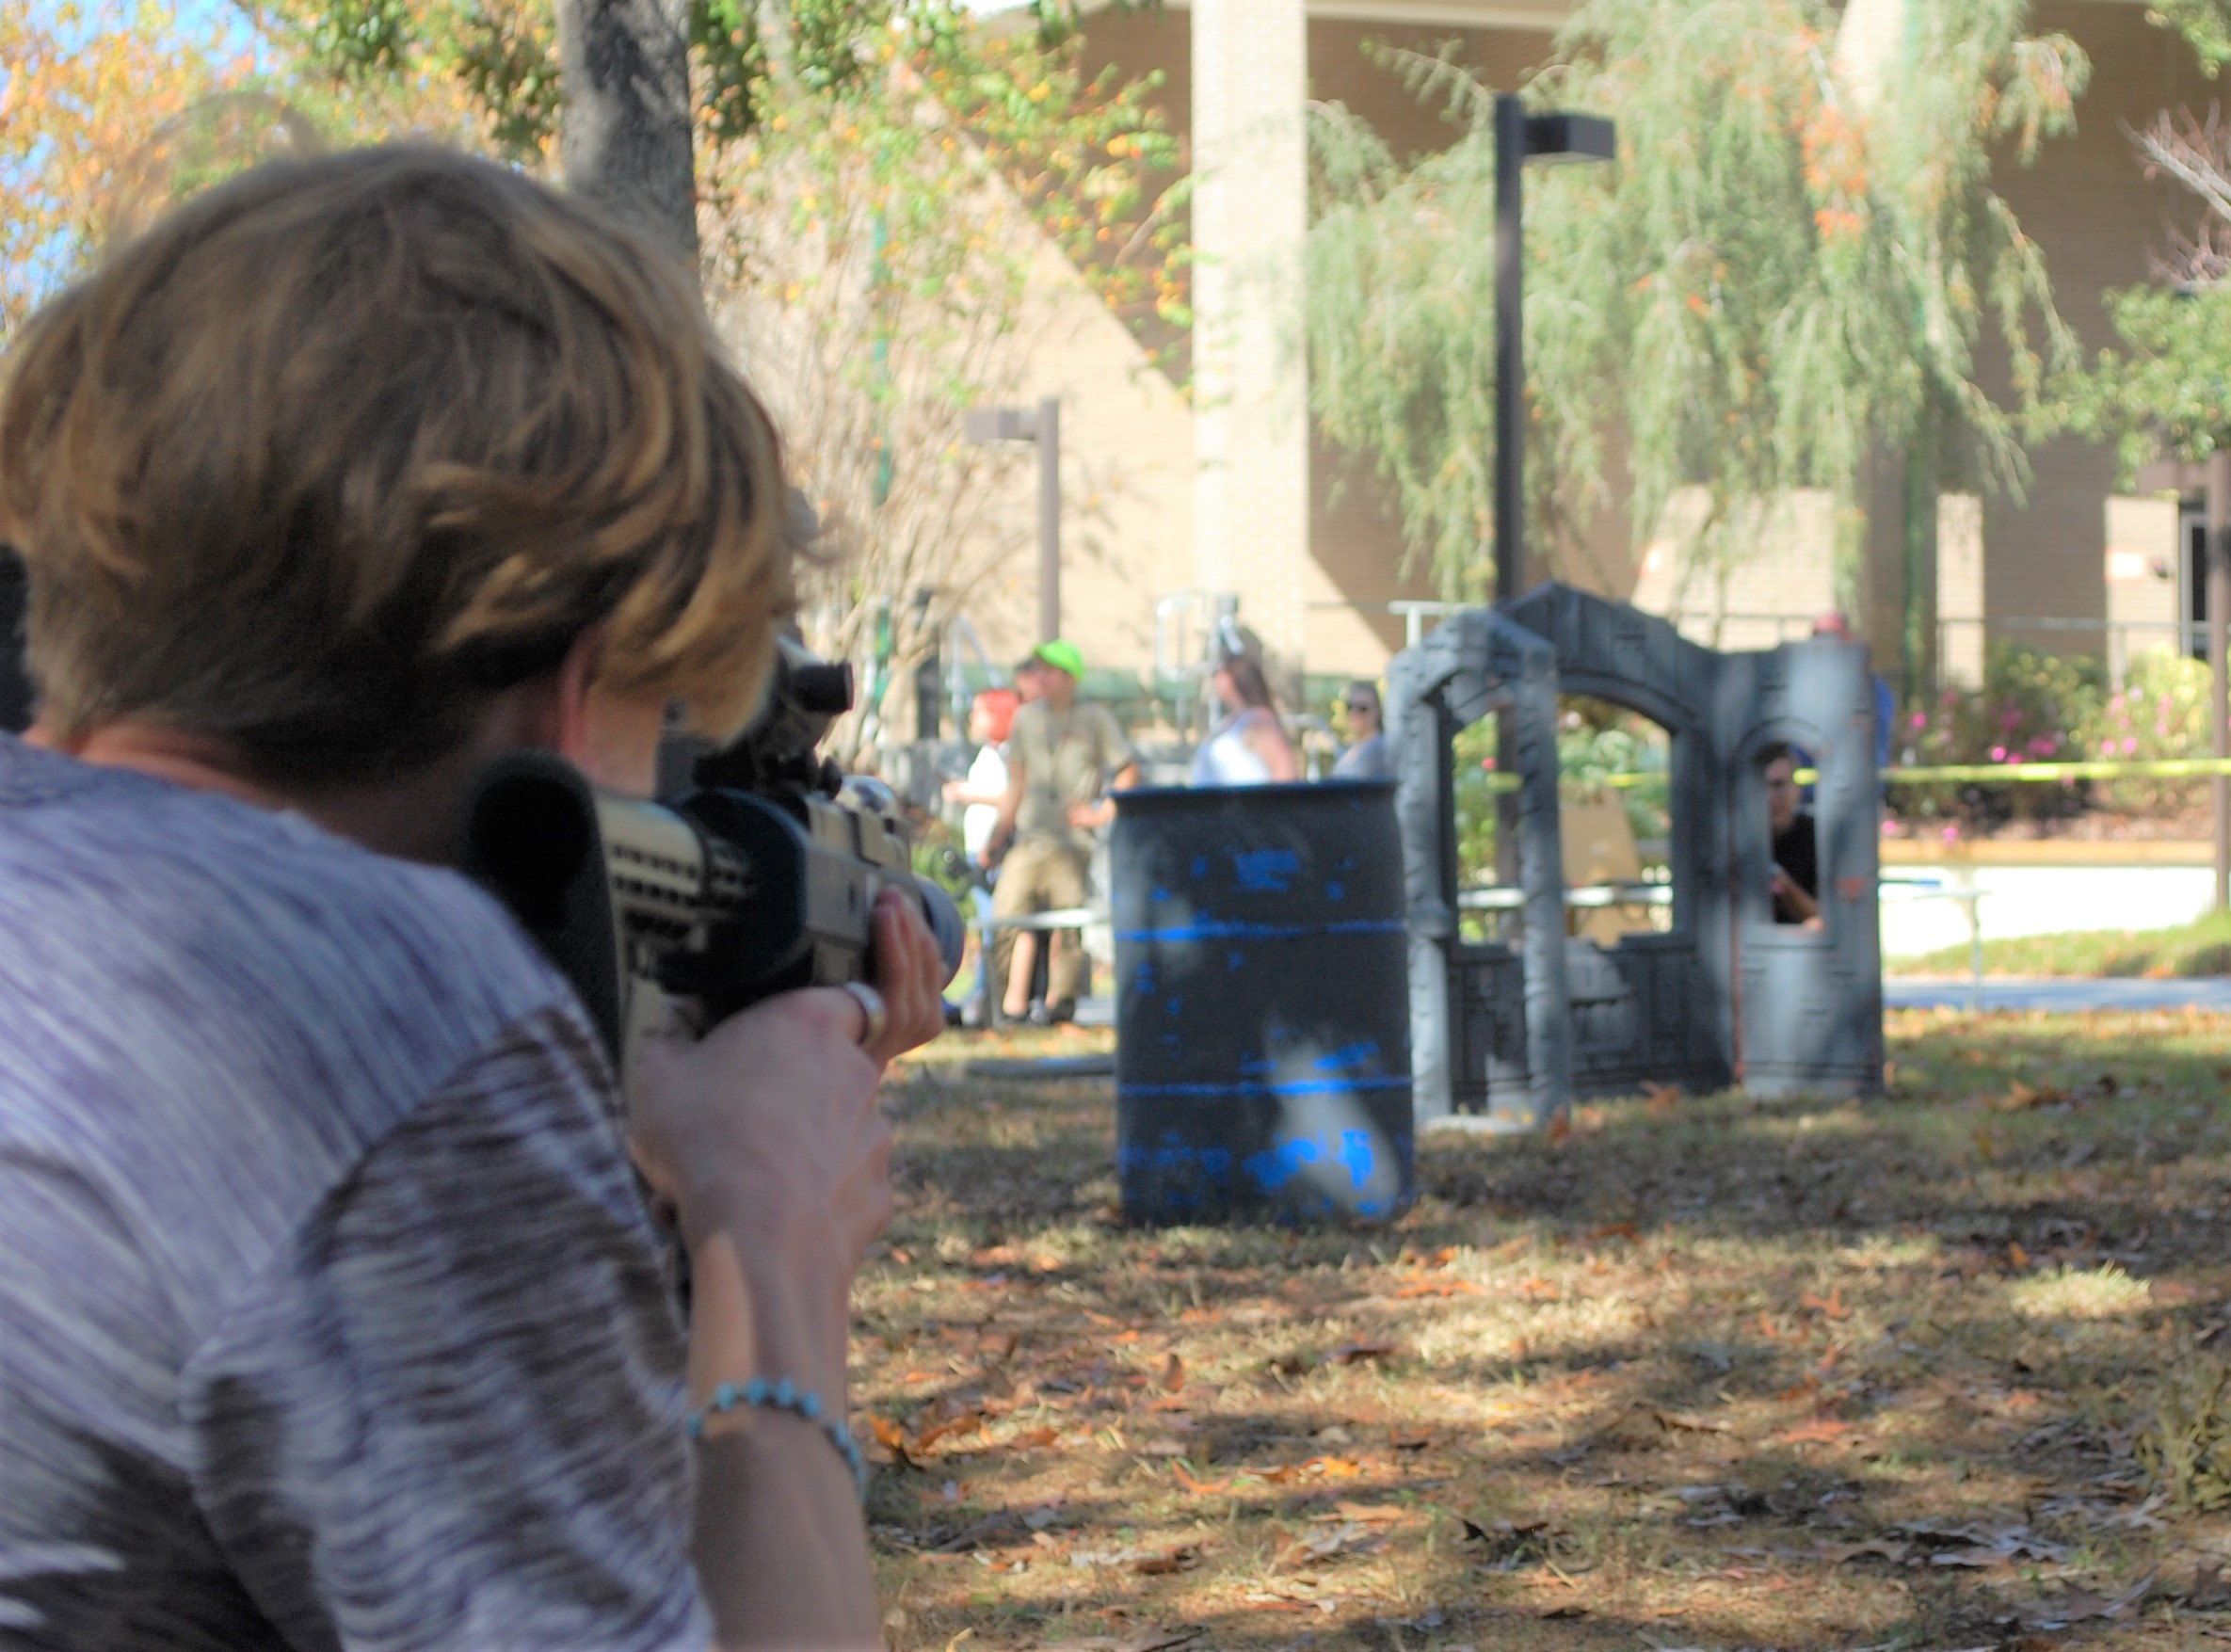 College Events in Florida - Stealth Mobile Laser Tag (56)